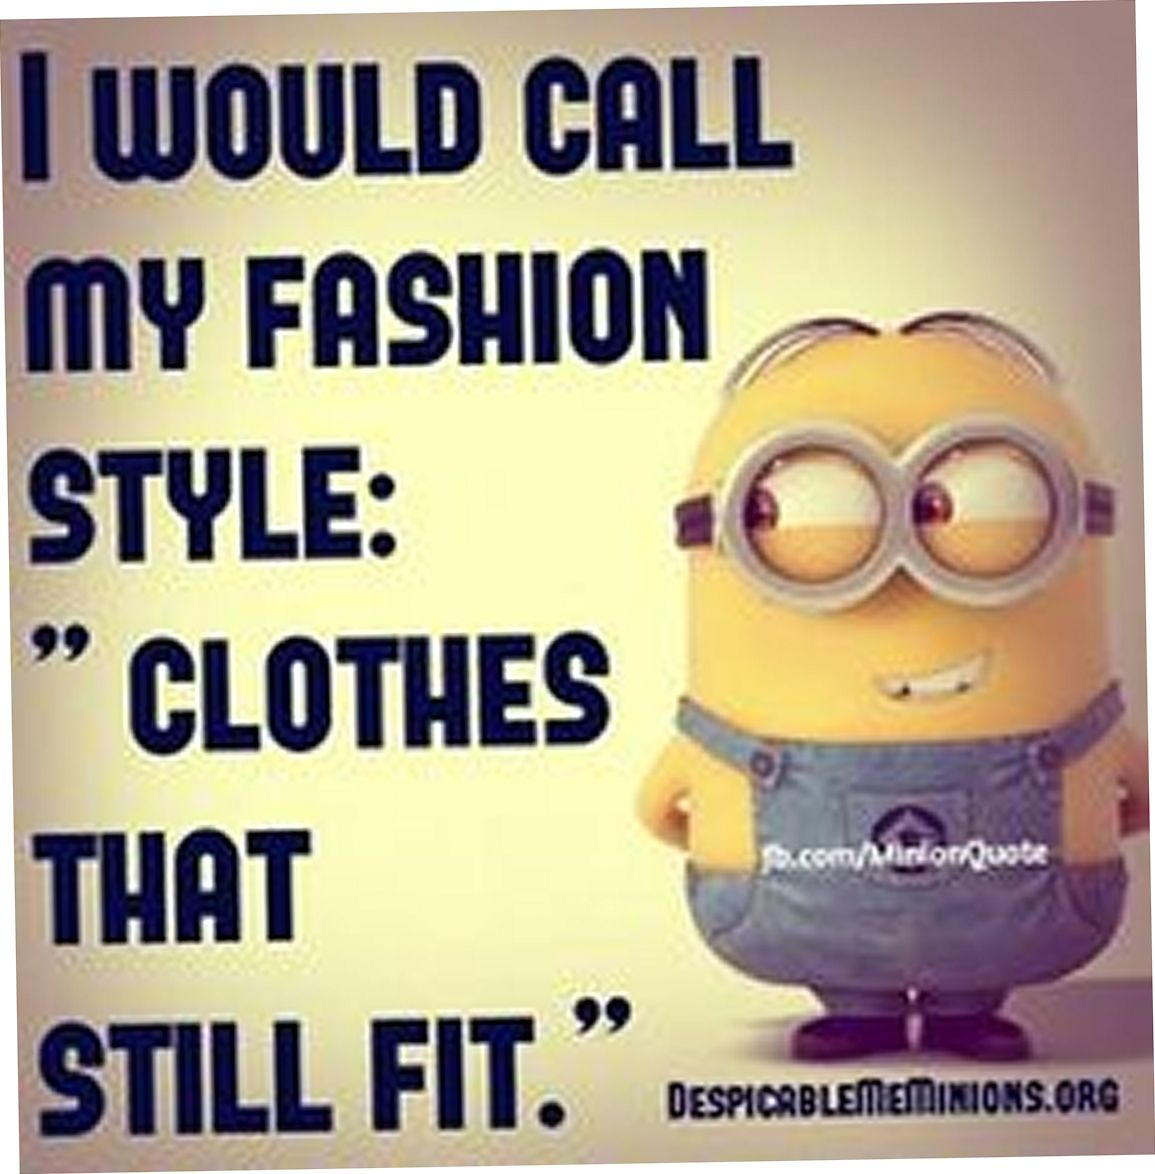 Funny Friday Quotes Humor: 20 Friday Funny Minions